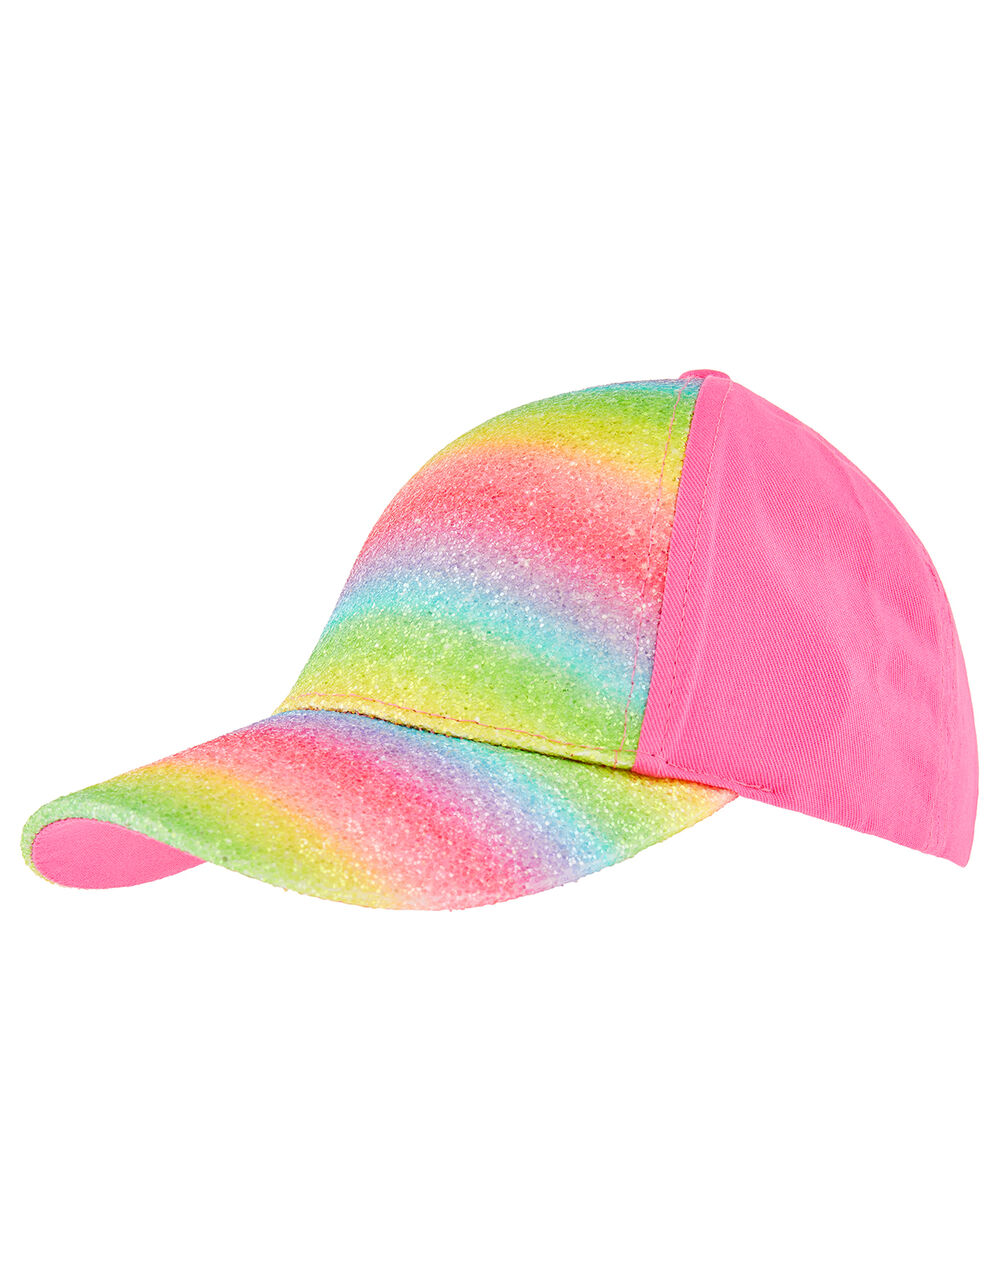 Rainbow Cotton Baseball Cap, Pink (PINK), large